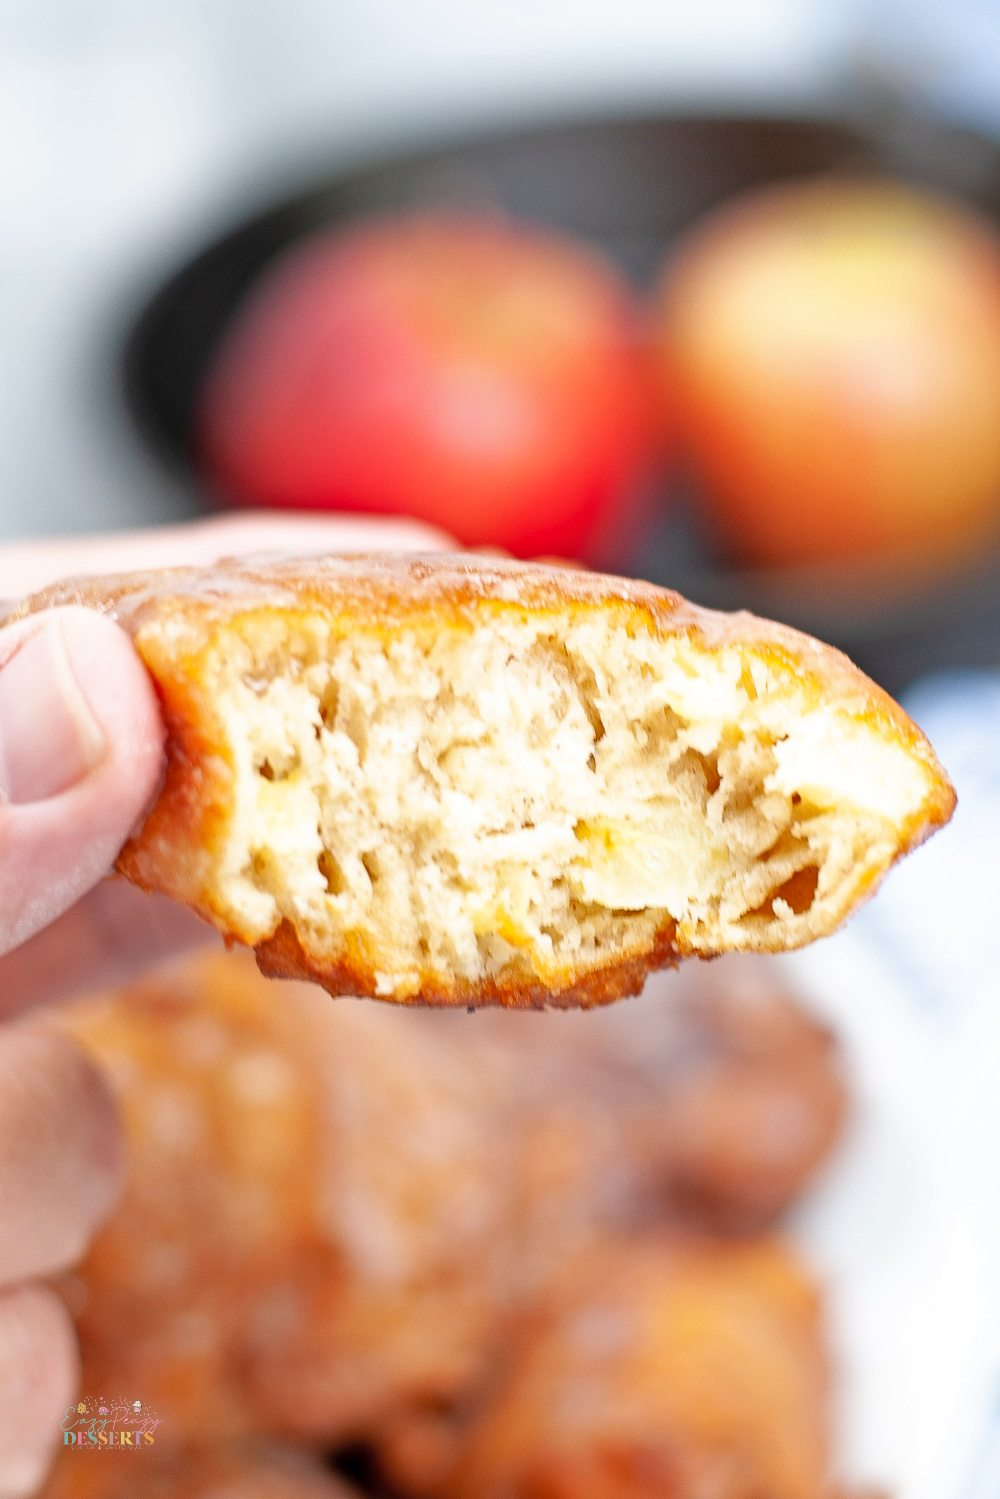 Detailed image of the inside of homemade fried apple fritters